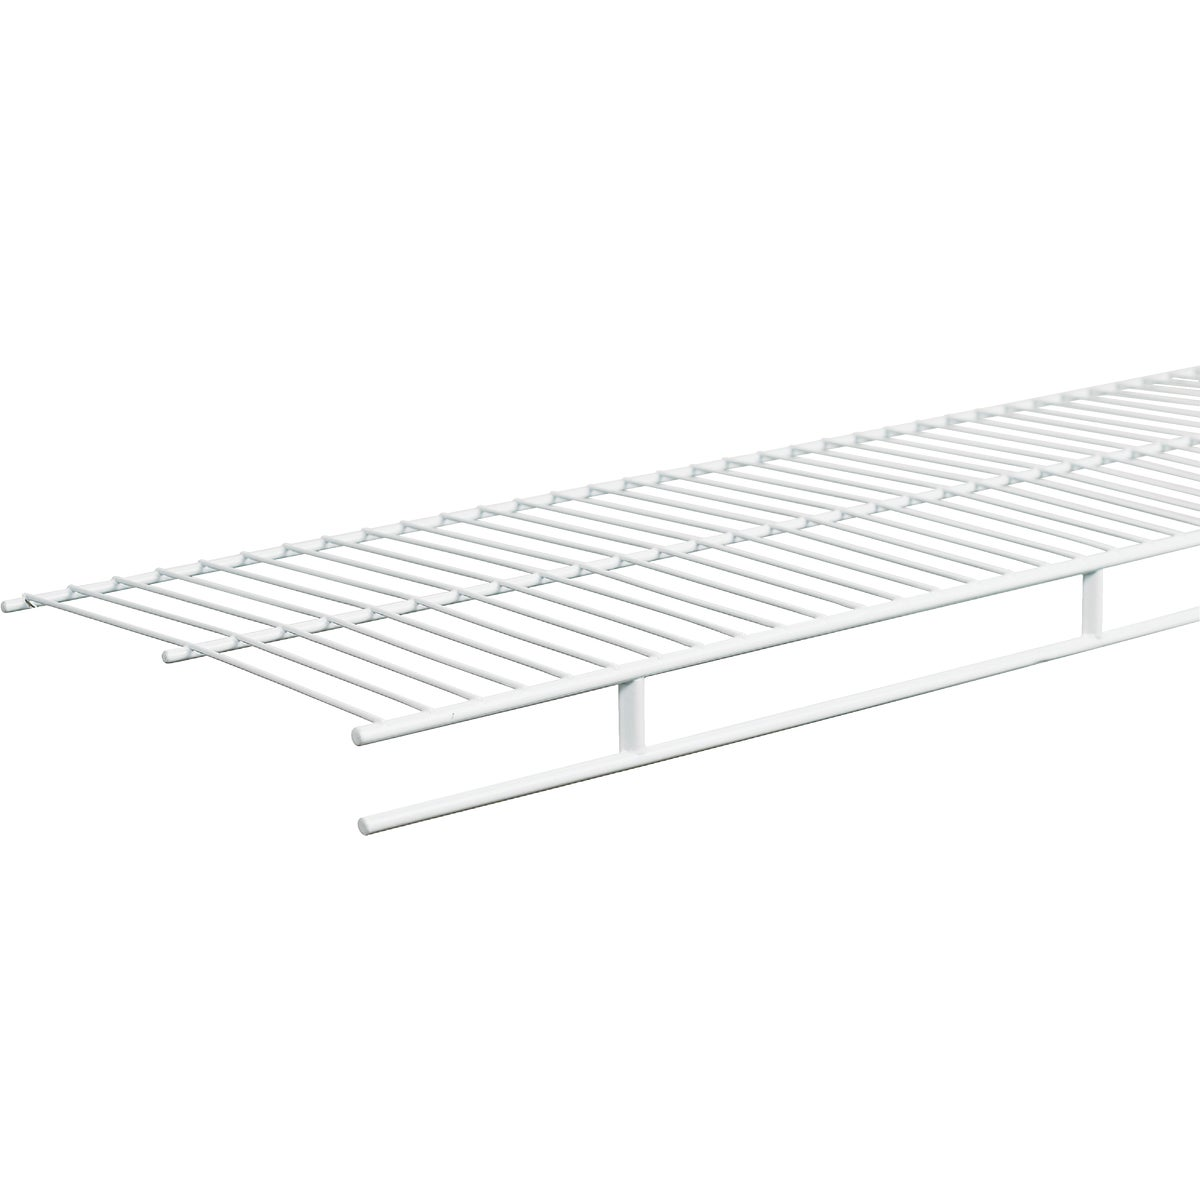 "12'X12"" S&R SHELF - 3730000 by Closetmaid"